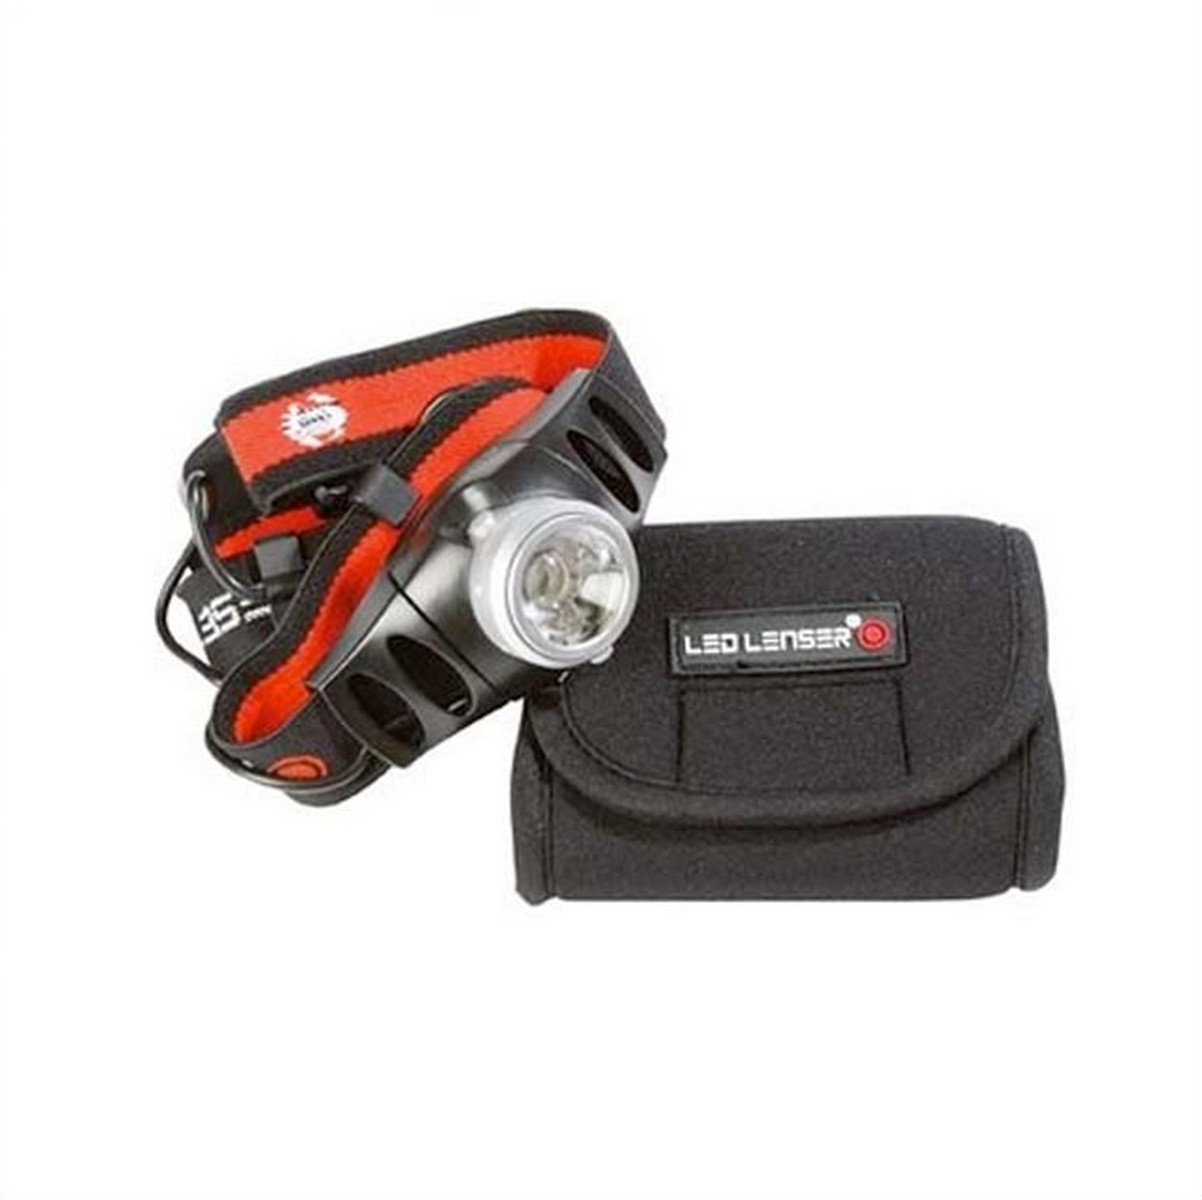 H5 Headlamp with Pouch / Box